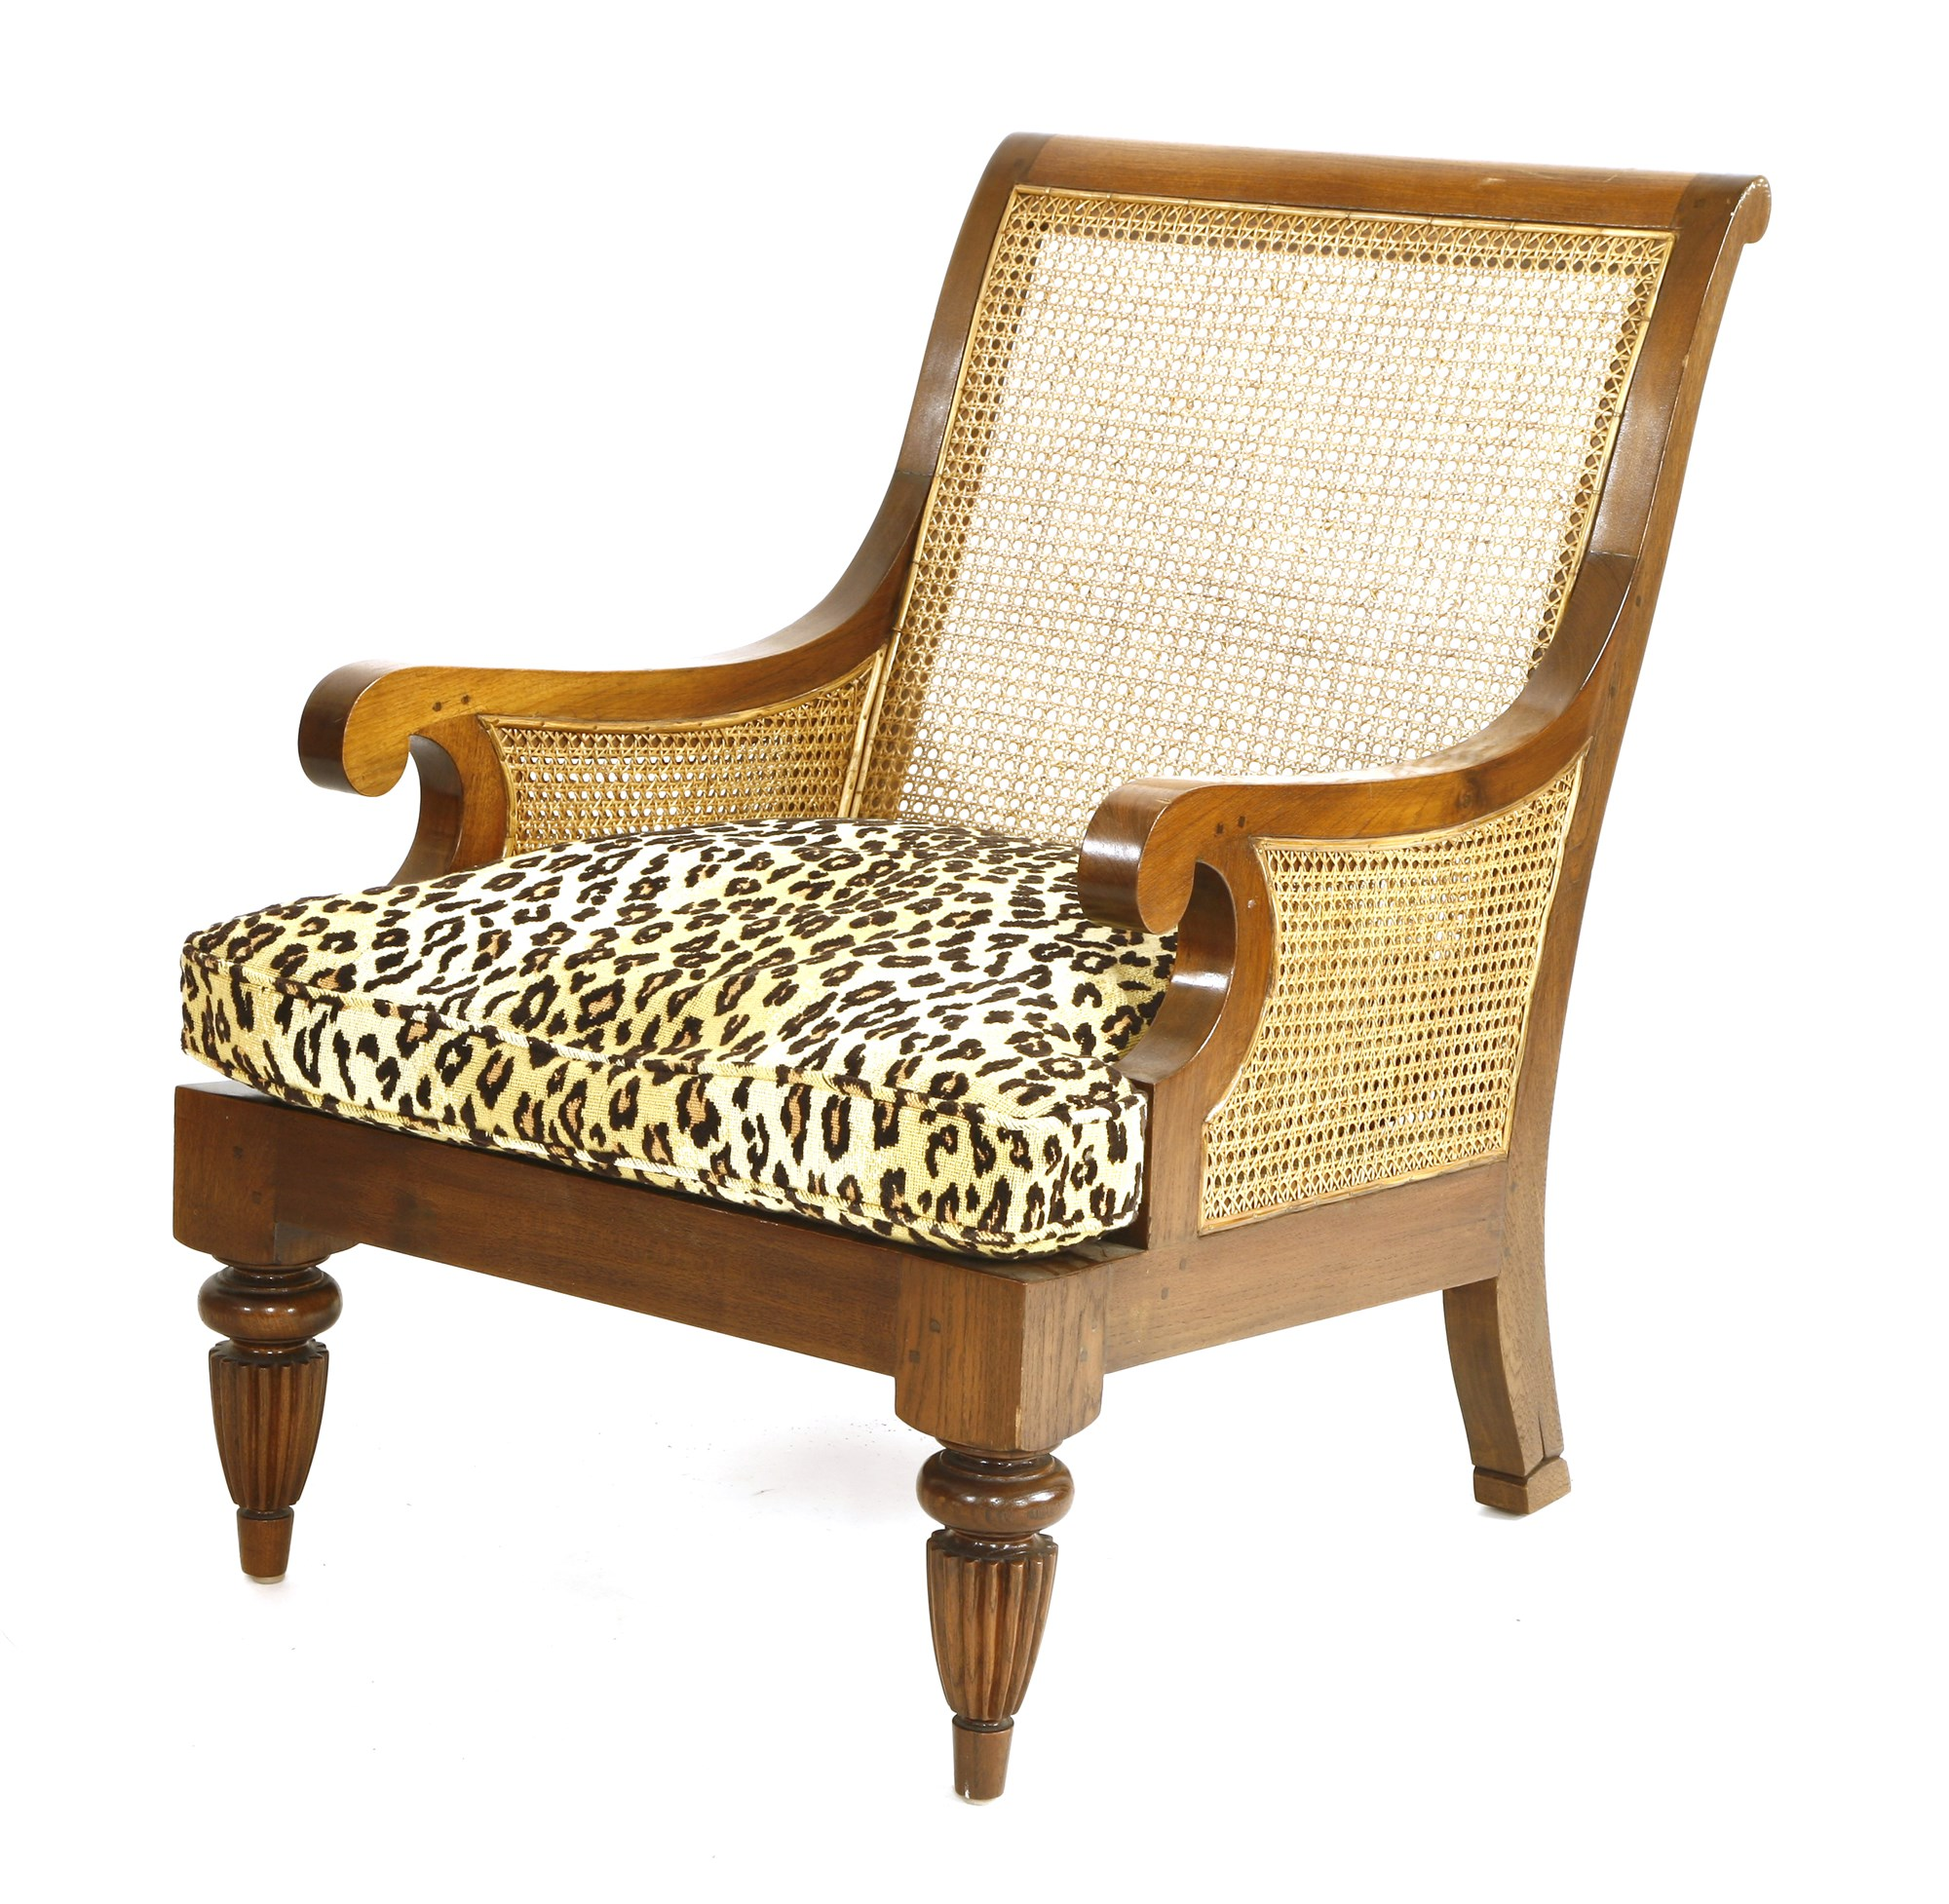 A teak chair with faux leopard cushion cover